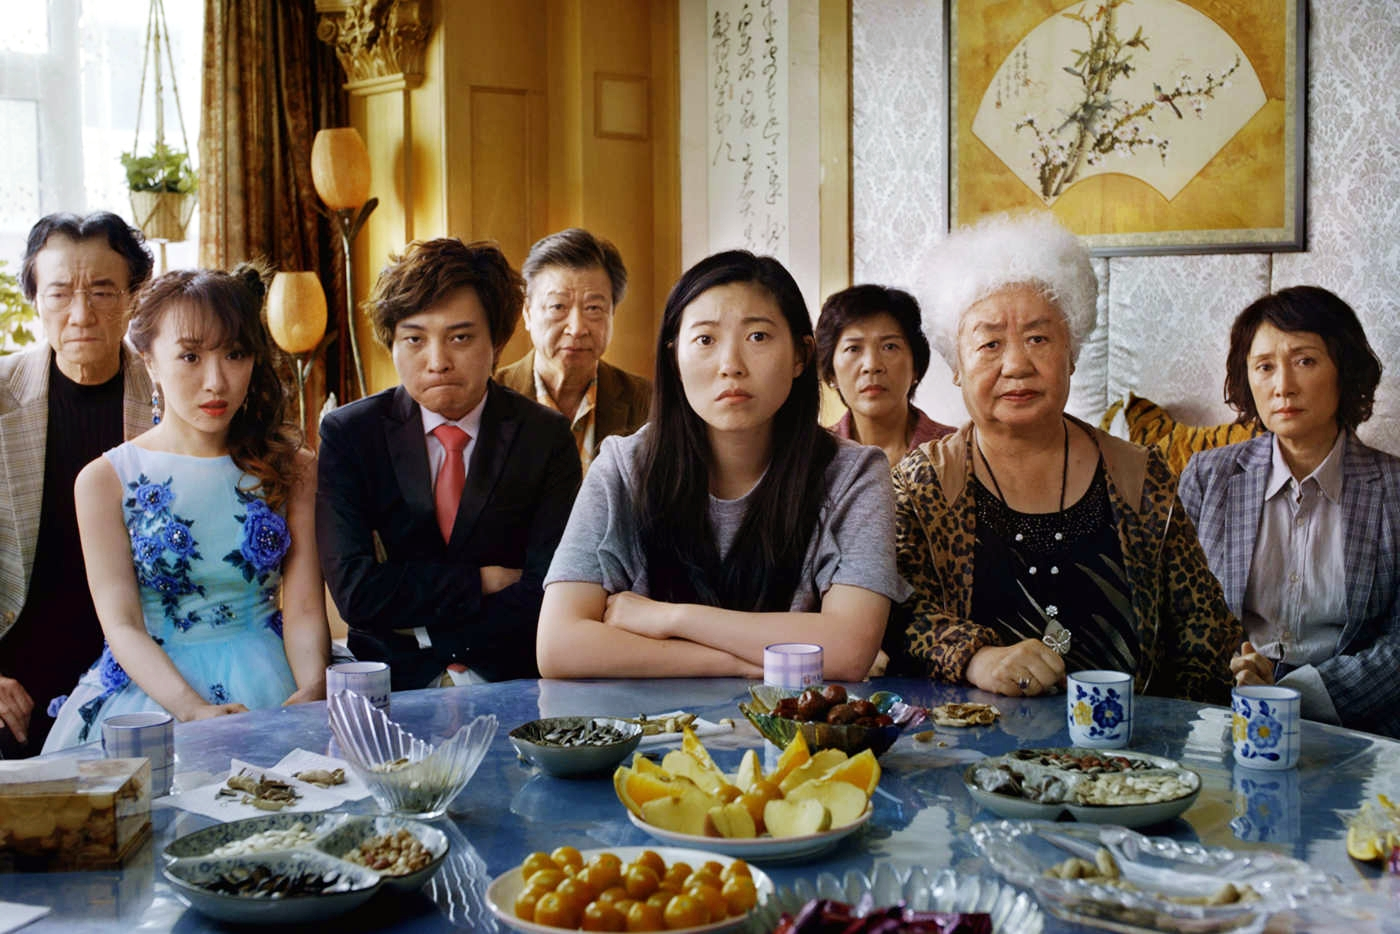 The Farewell's main character Bili and her family sit at a dining table in their home in China.